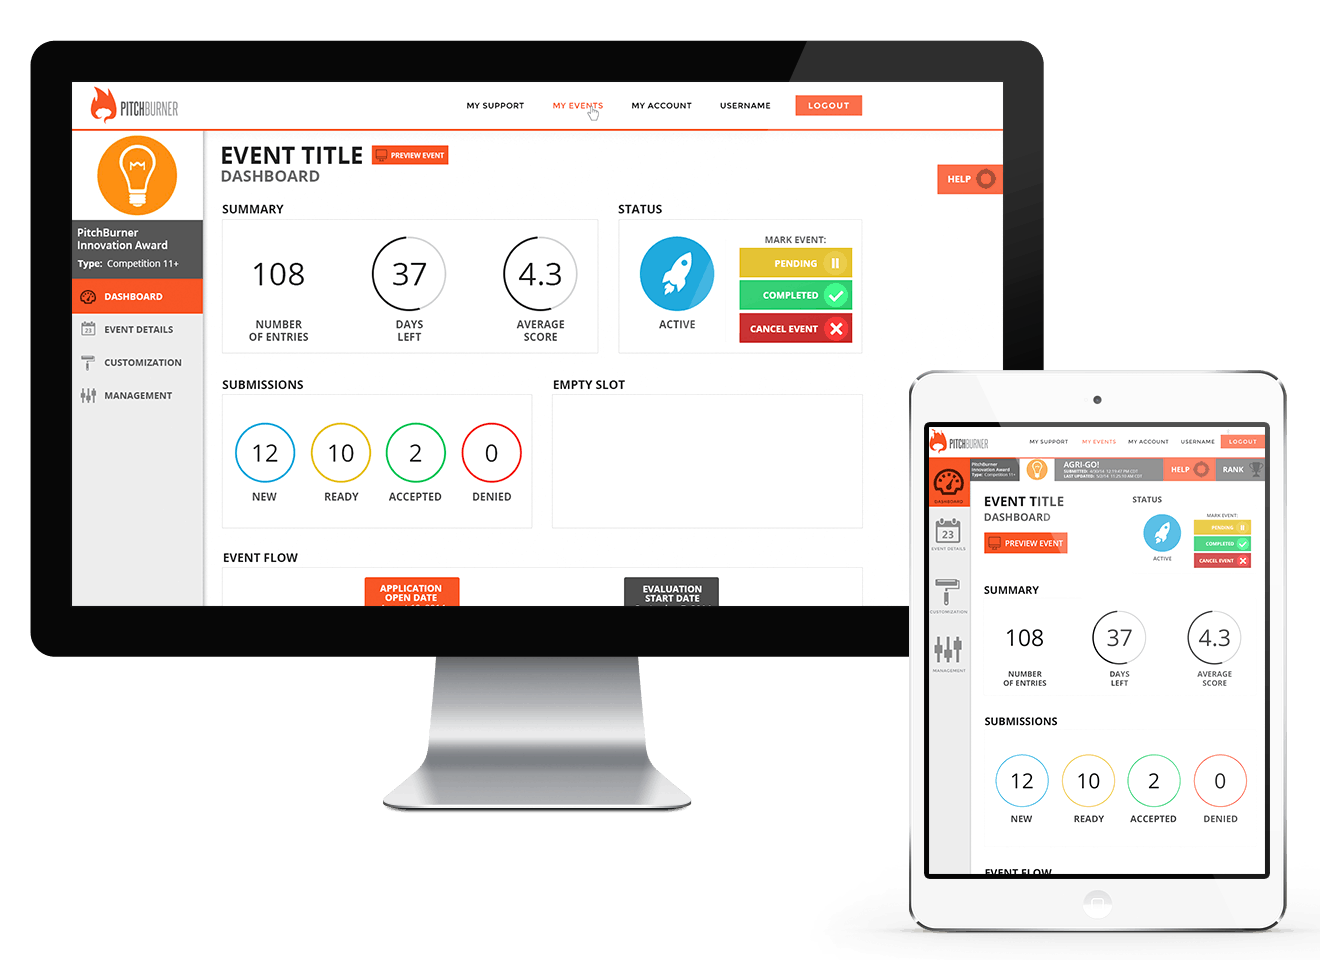 Pitchburner Dashboard